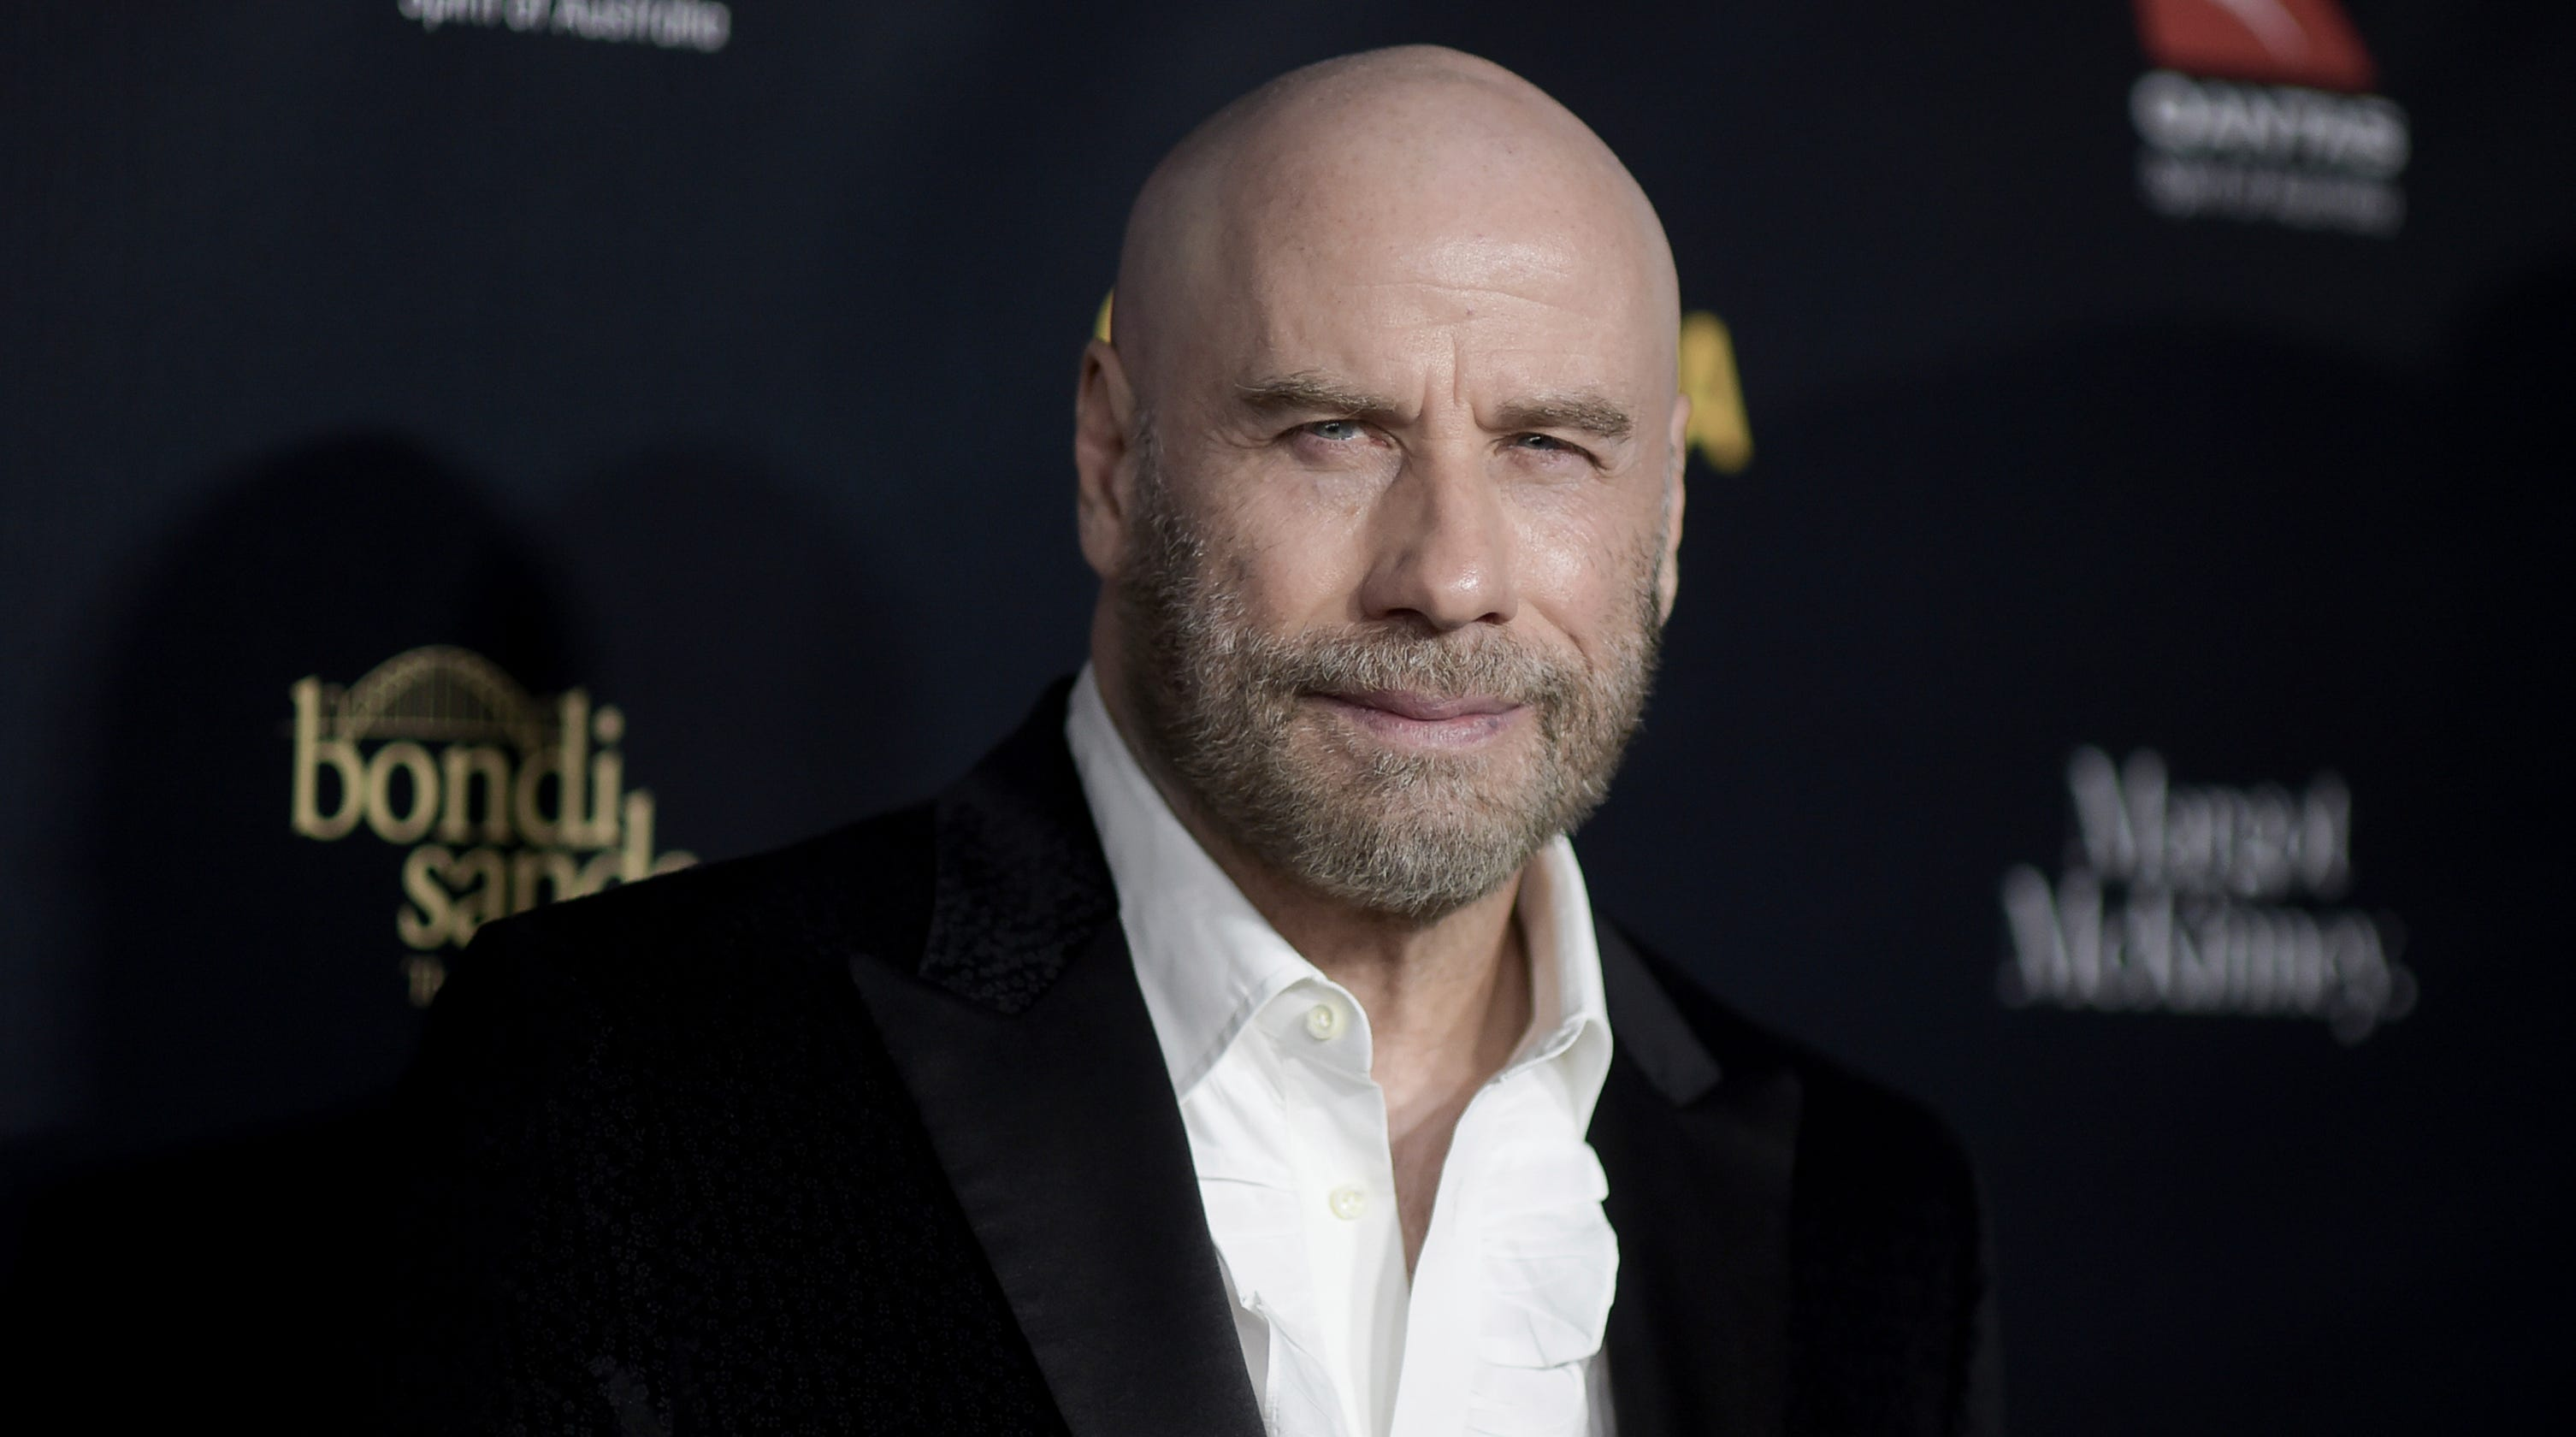 John Travolta Is Keeping The Cool Bald Look And It Feels Great